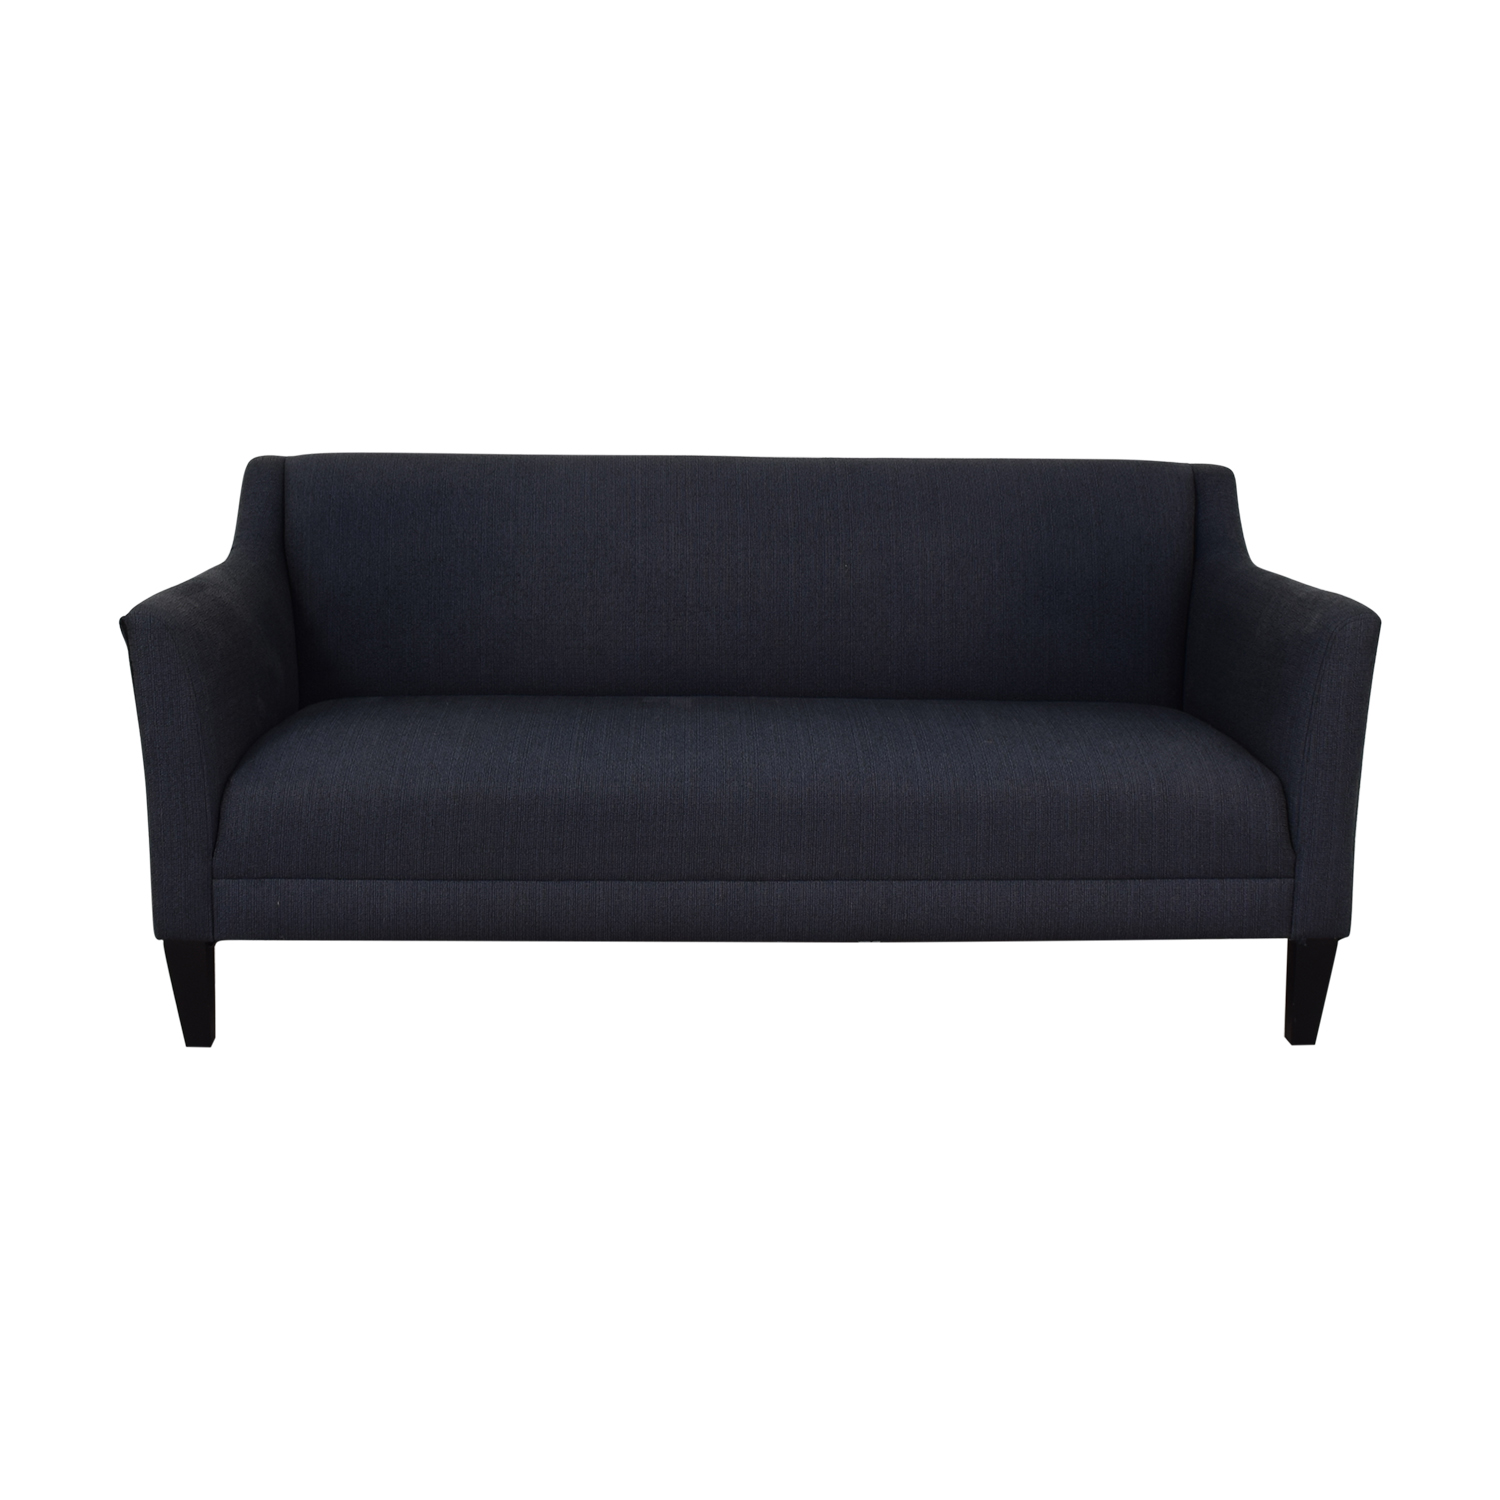 Crate & Barrel Blue Apartment Sofa Dark Blue